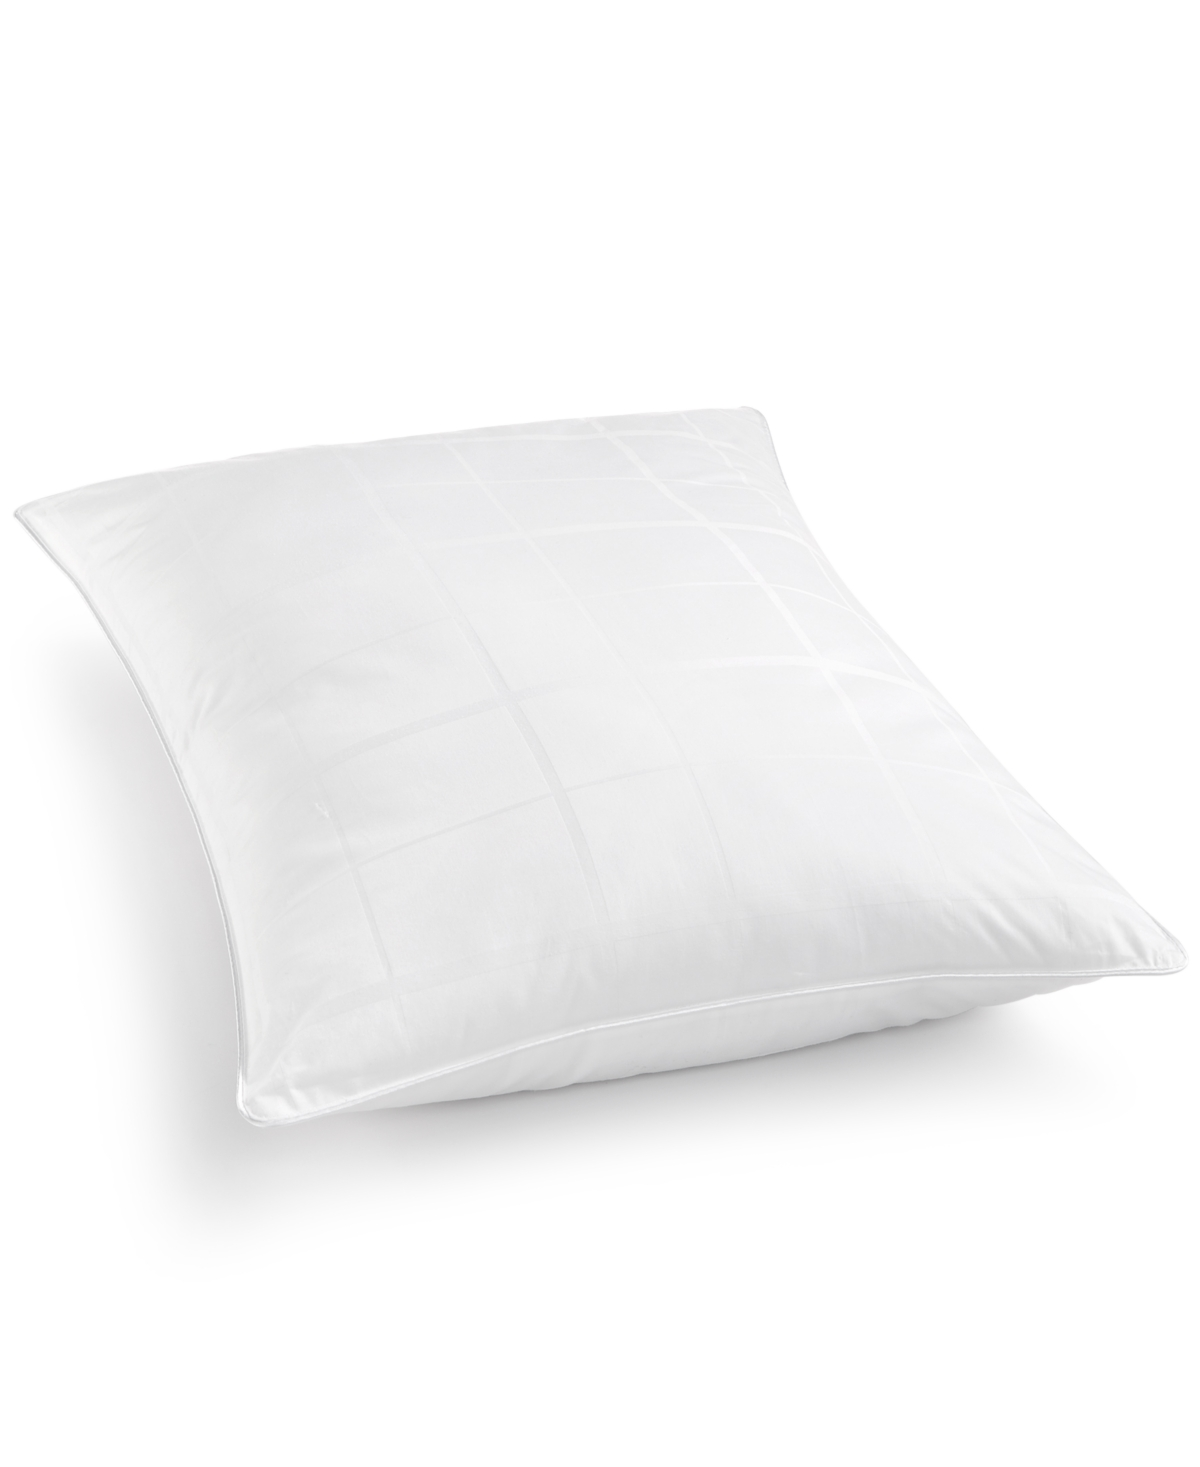 Martha Stewart Collection Feels Like Down King Soft Pillow, Created for Macy's Bedding